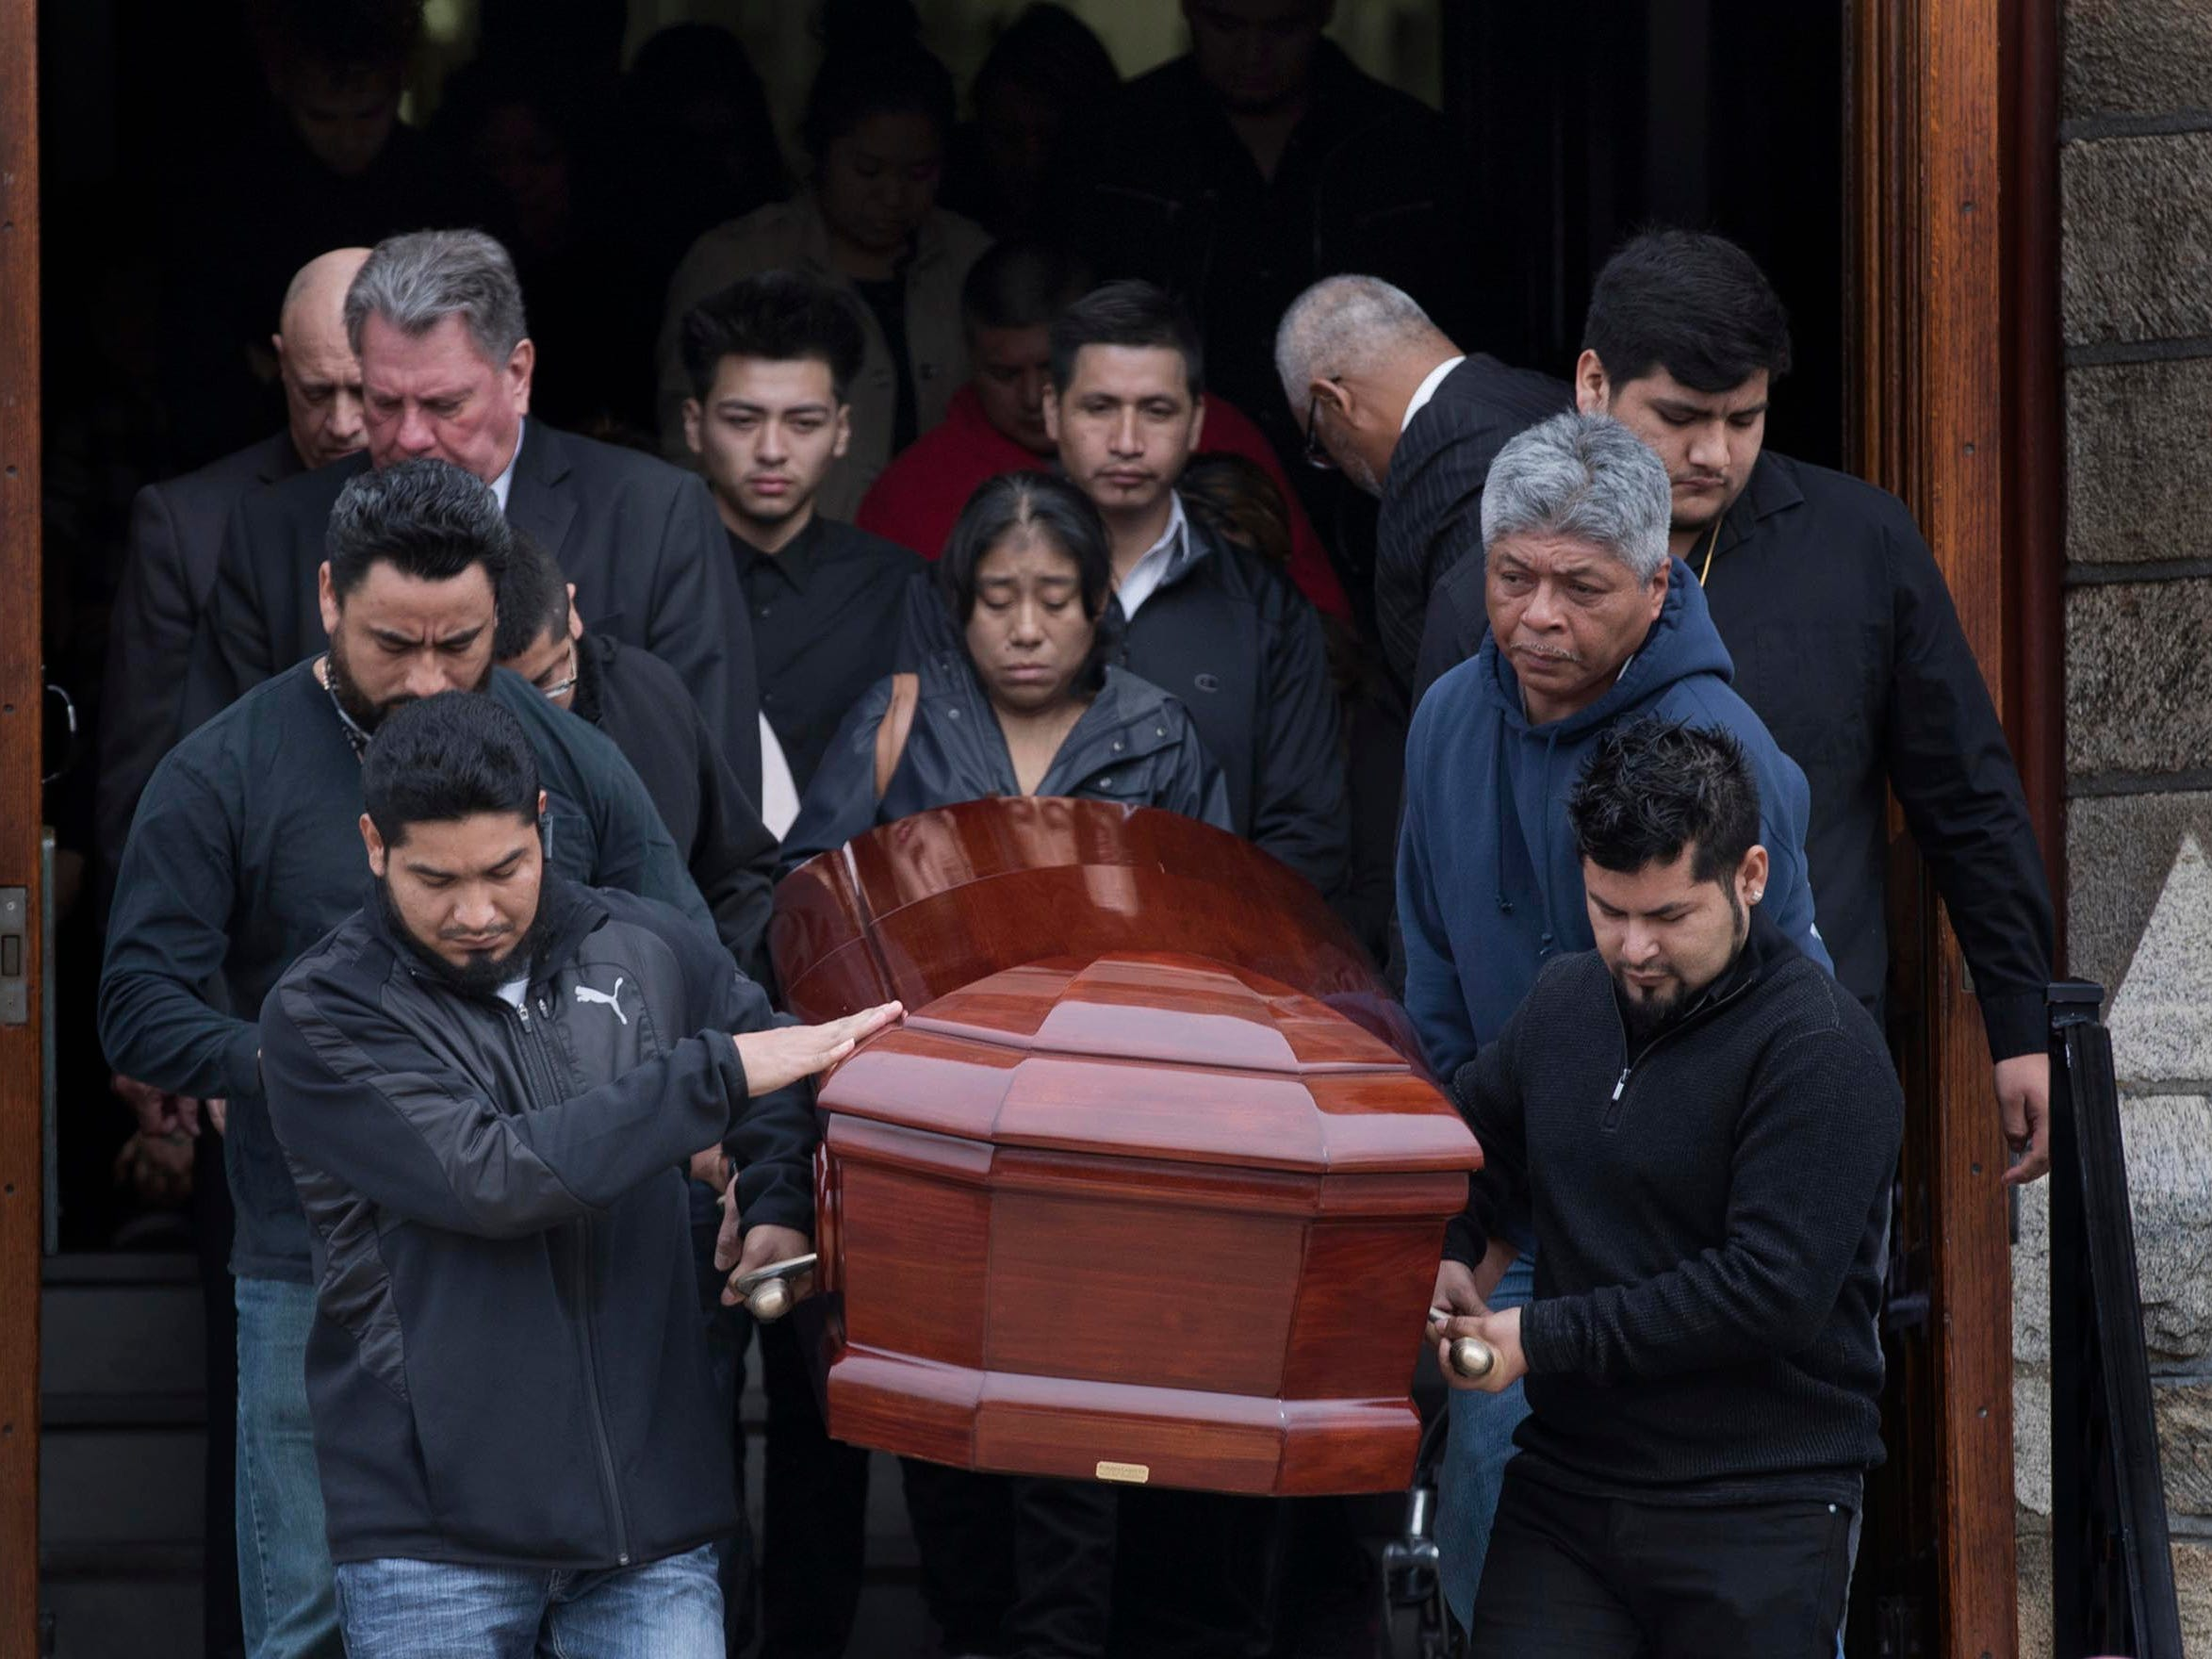 Funeral service for 10 year old Yovanni Banos-Mereno at Holy Spirit Roman Catholic Church in Asbury Park who was killed by a stray bullet through the window of his home.  The gunman was looking to shoot YovanniÕs older brother over a gang issue.  2/28/2018